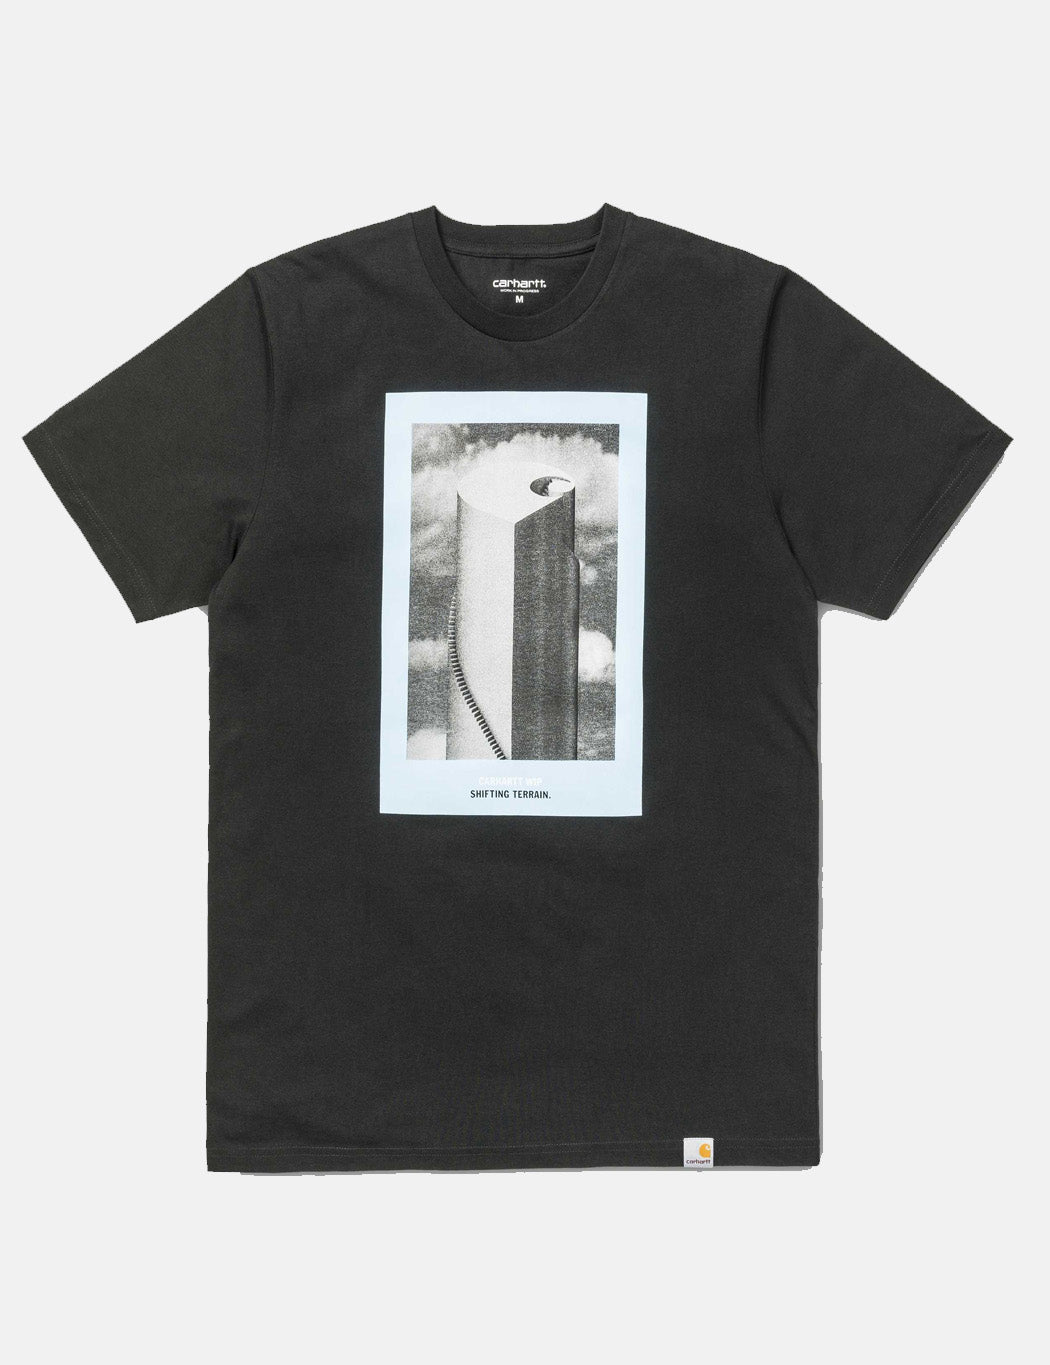 Carhartt Tower T-Shirt - Black